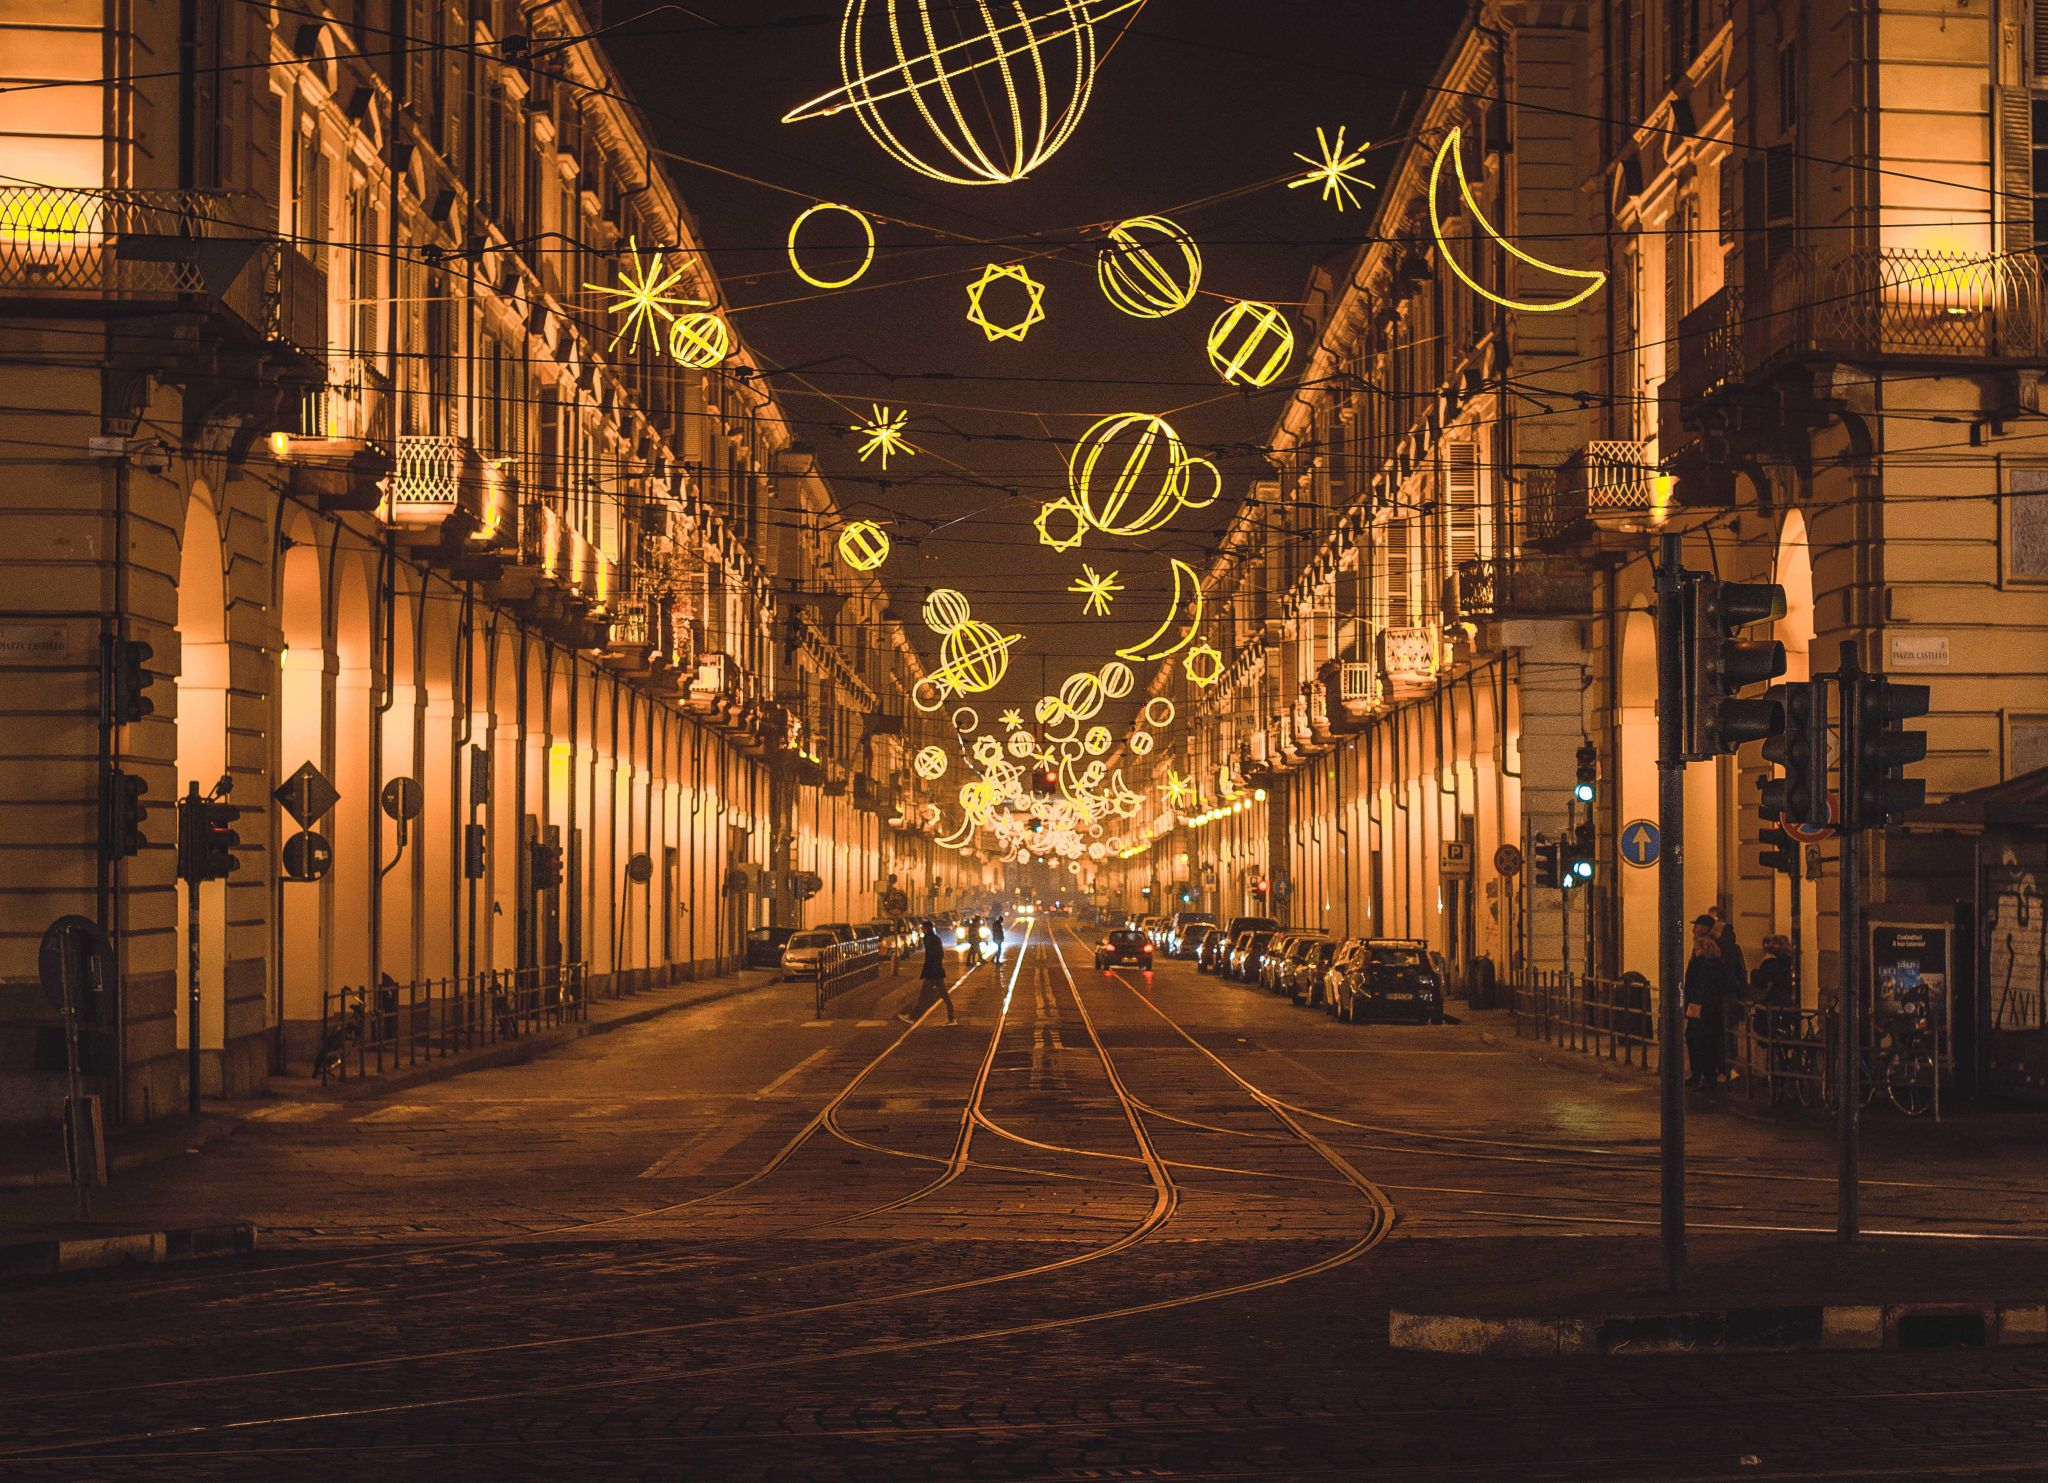 Christmas In Italy Decorations.Christmas Decorations 2016 Via Po Italy